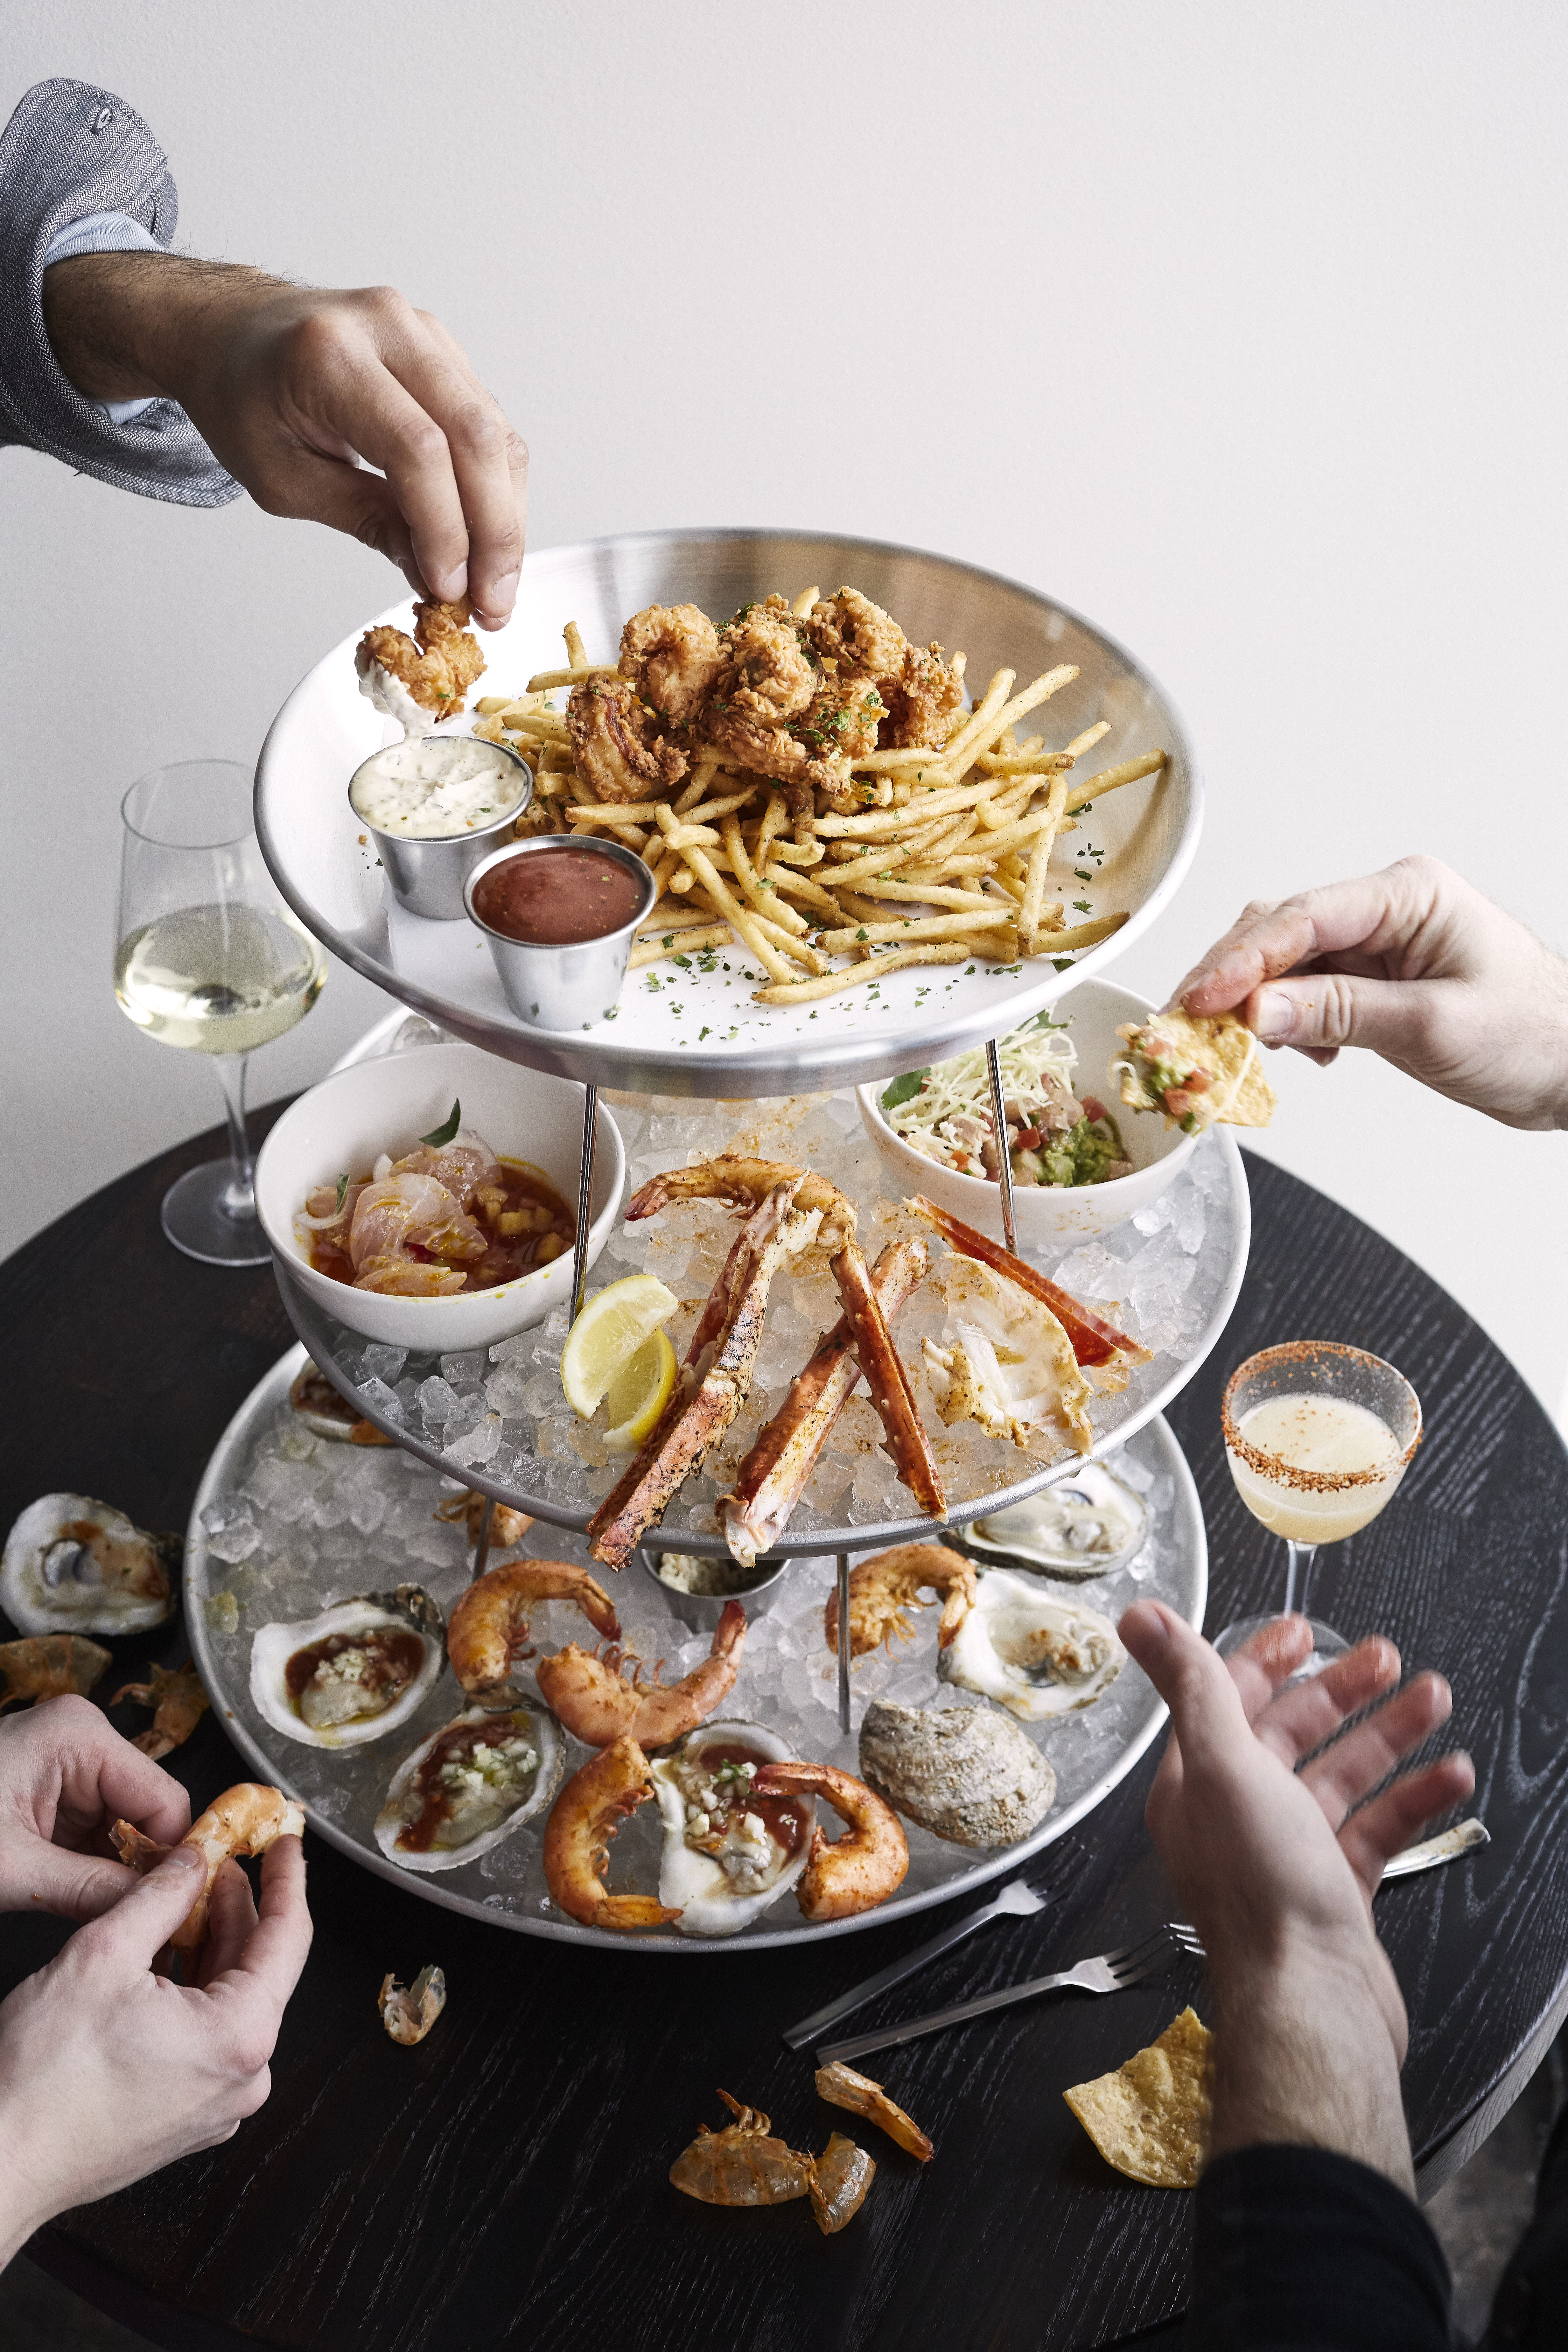 Jody Horton - Food Photography - Seafood Tower at Shore Restaurant